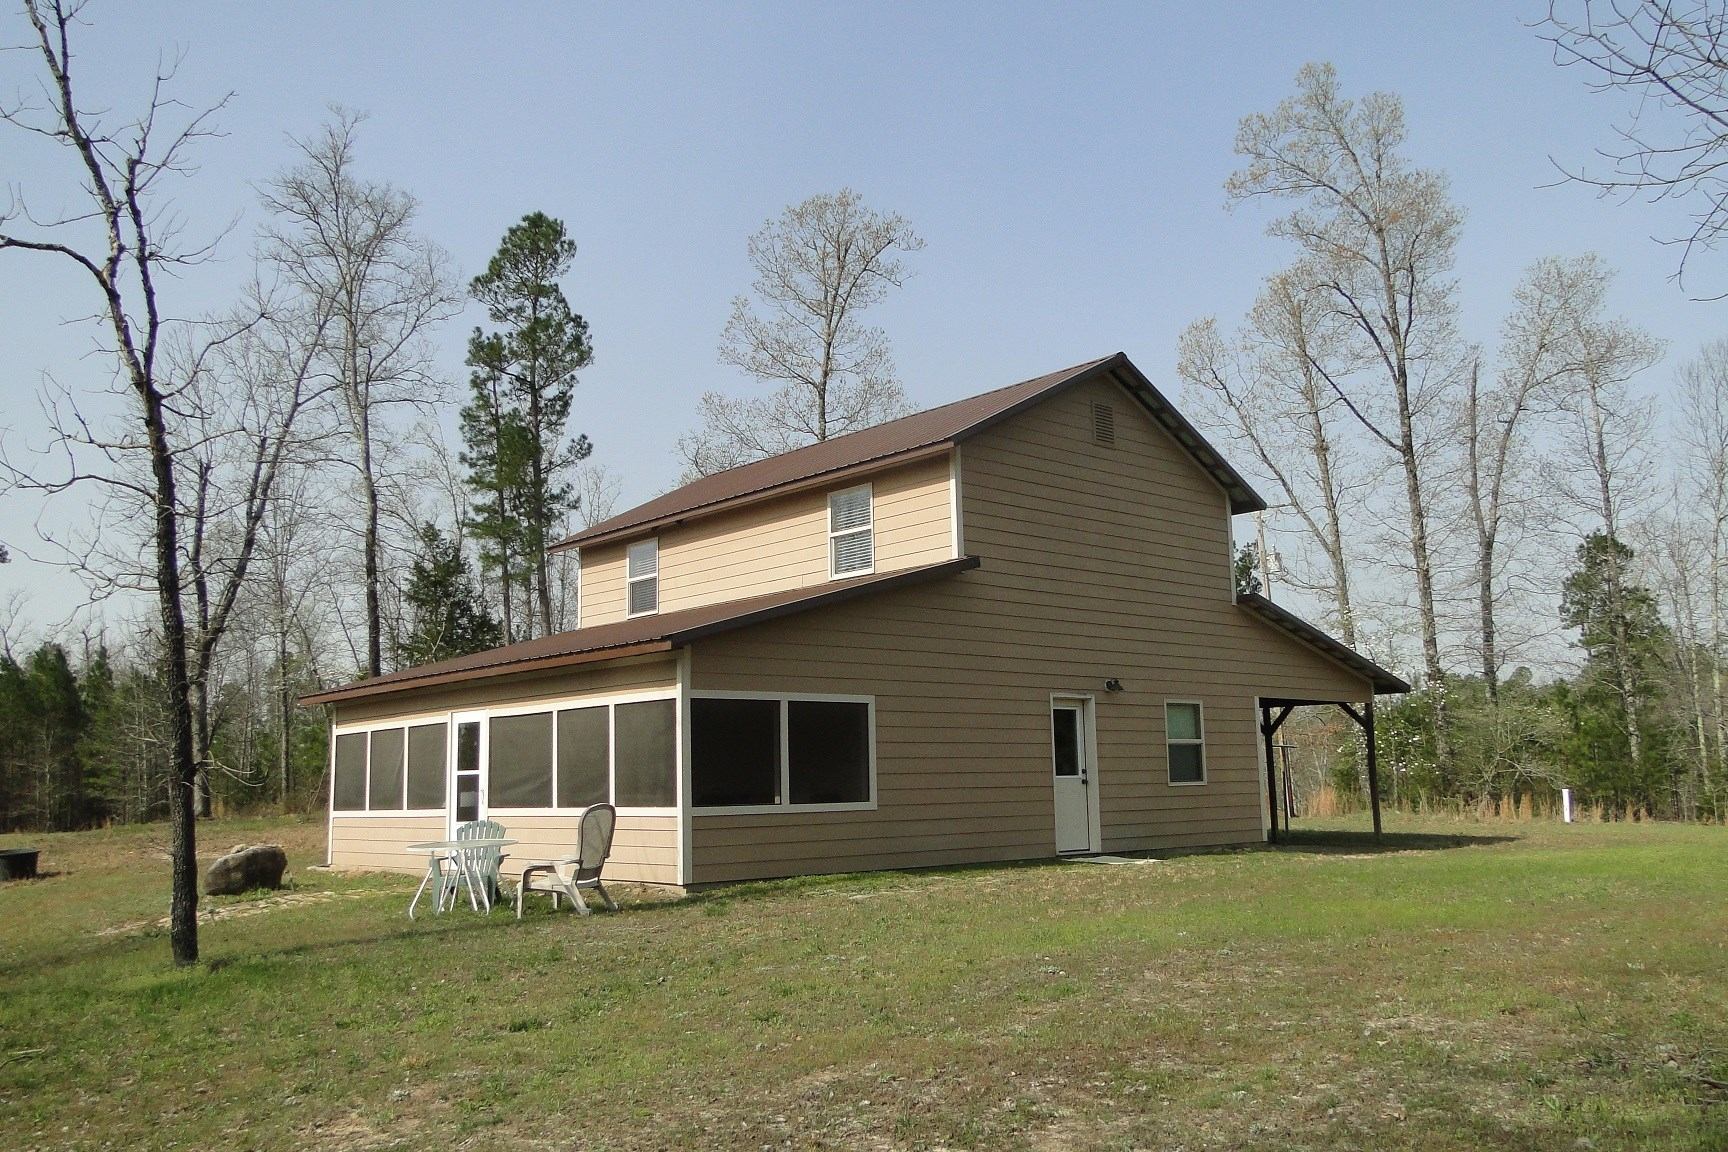 HOME FOR SALE WITH ACREAGE IN THE OZARK MOUNTAINS